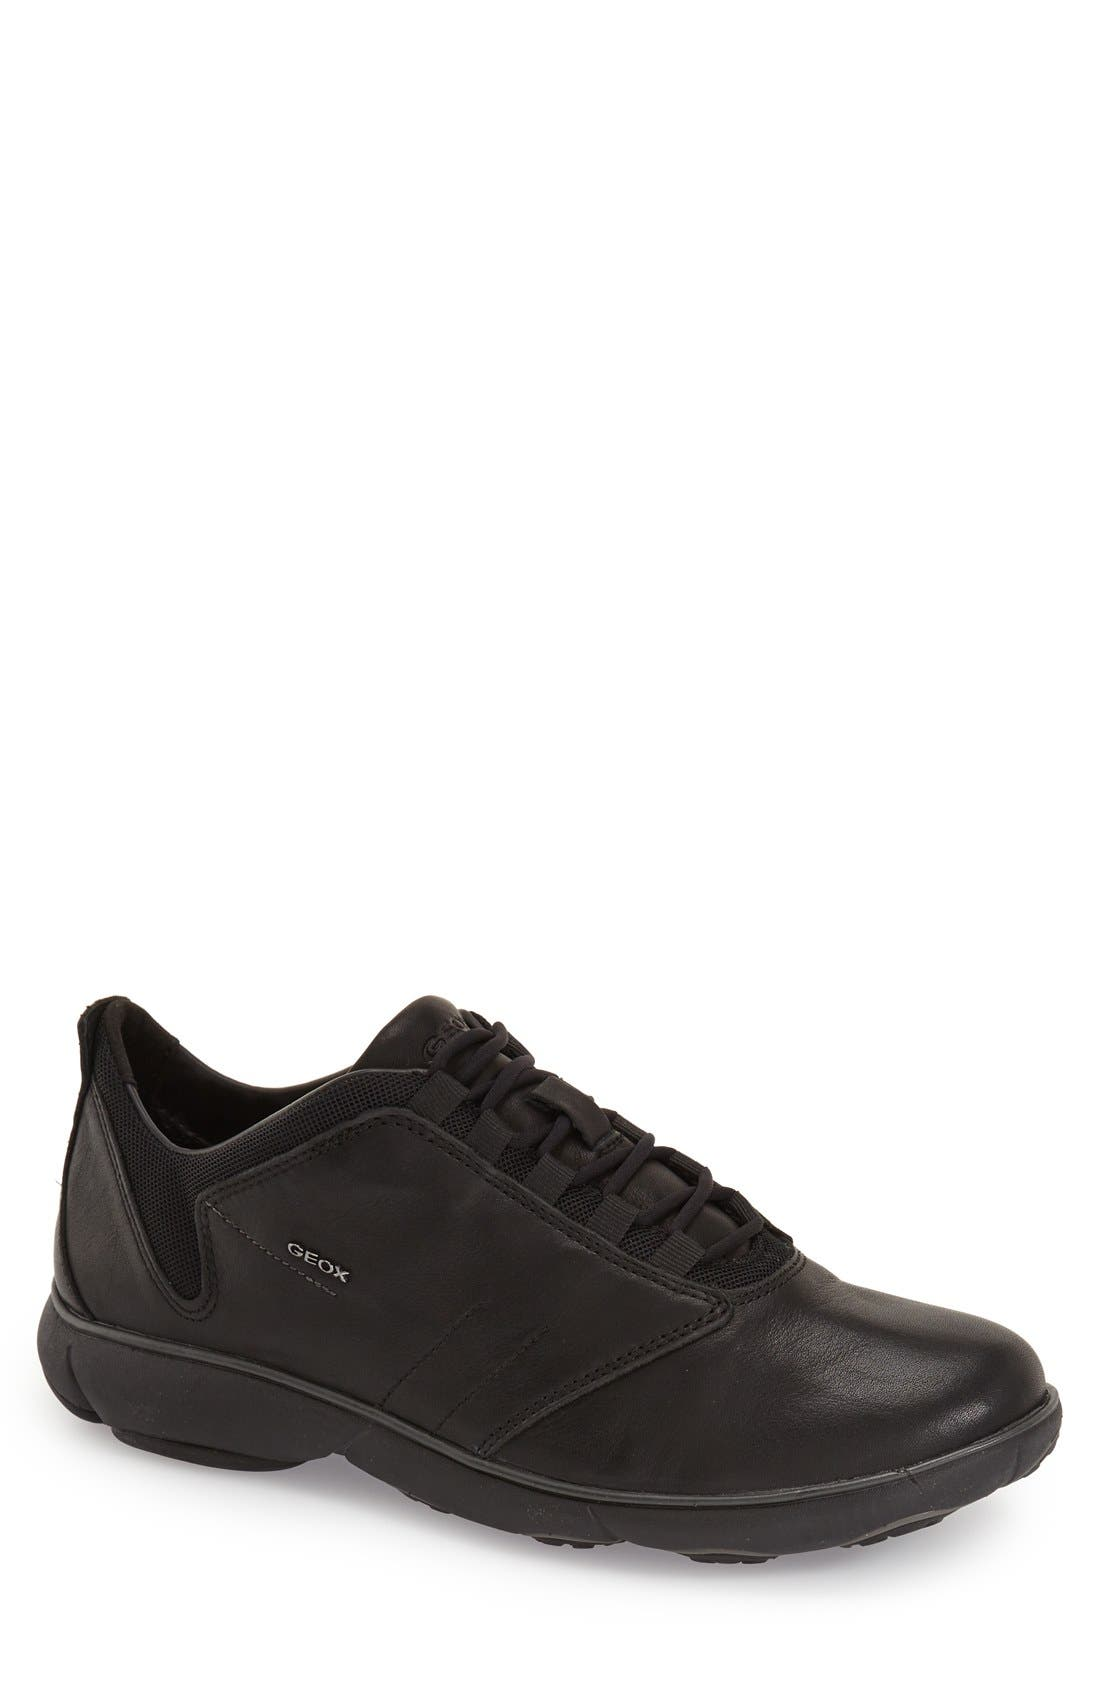 Nebula 11 Sneaker,                         Main,                         color, Black Oily Leather